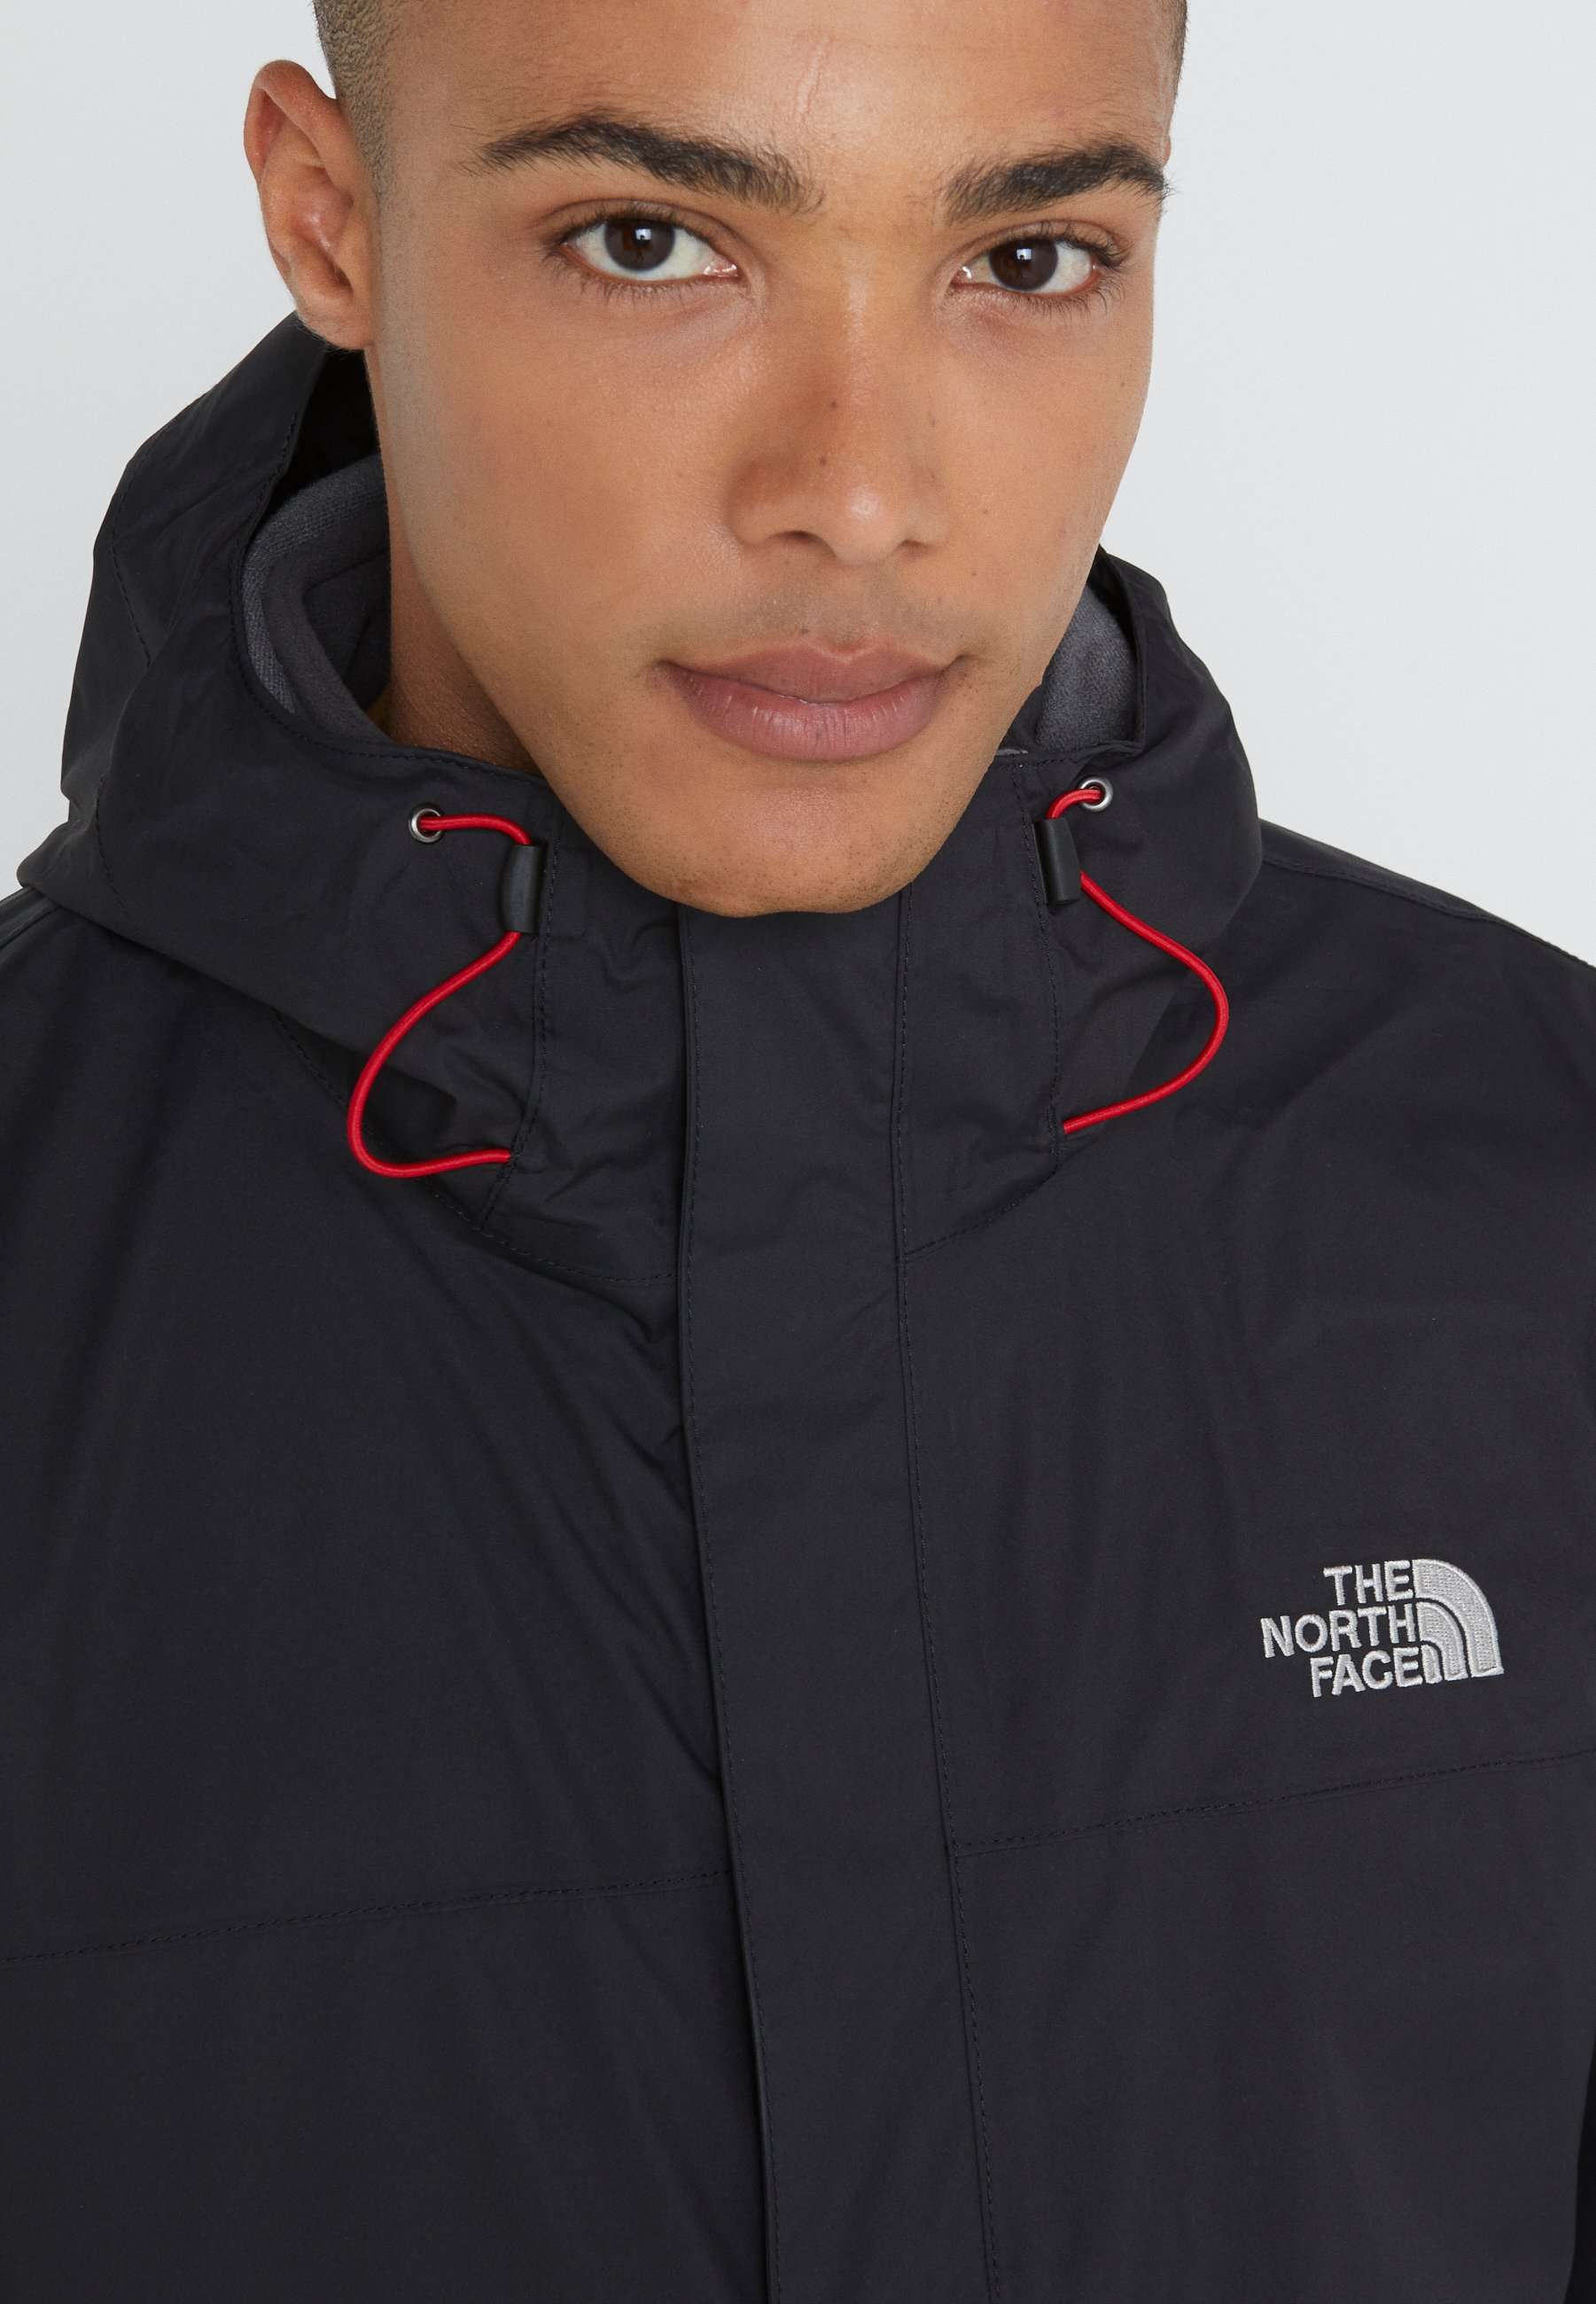 The North Face CORDILLERA TRICLIMATE JACKET 2 IN 1